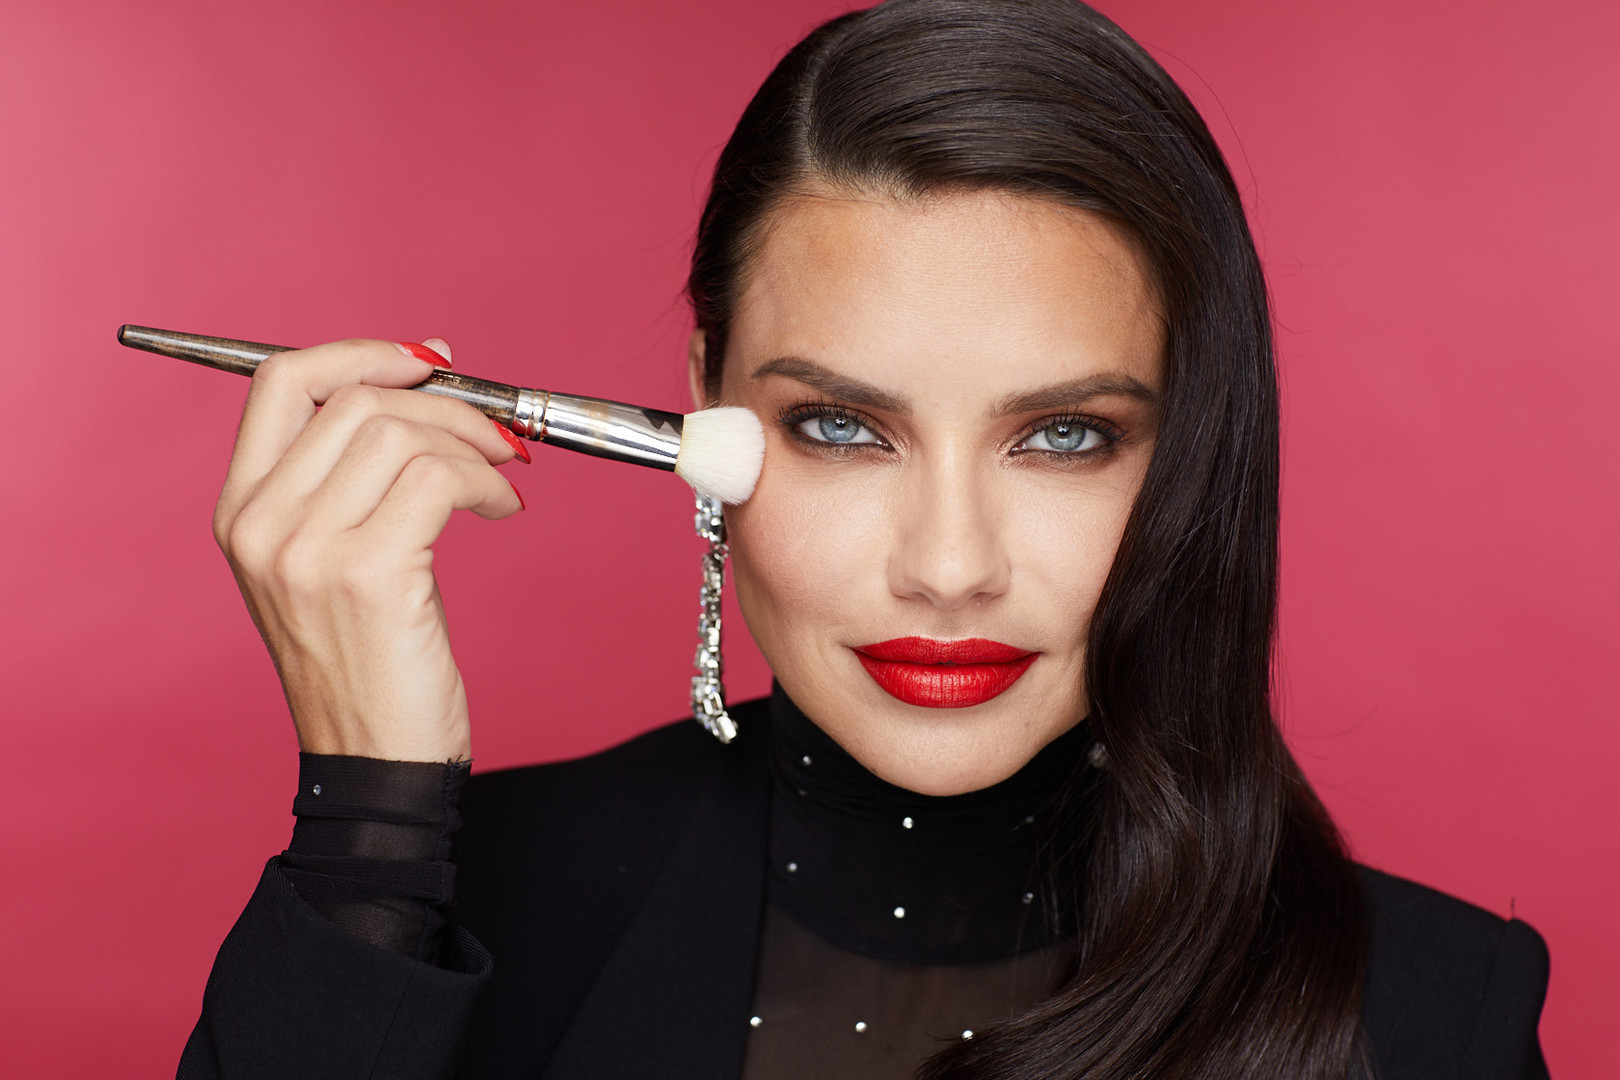 P190711_Maybelline_GMR-Holiday_Final_H8A